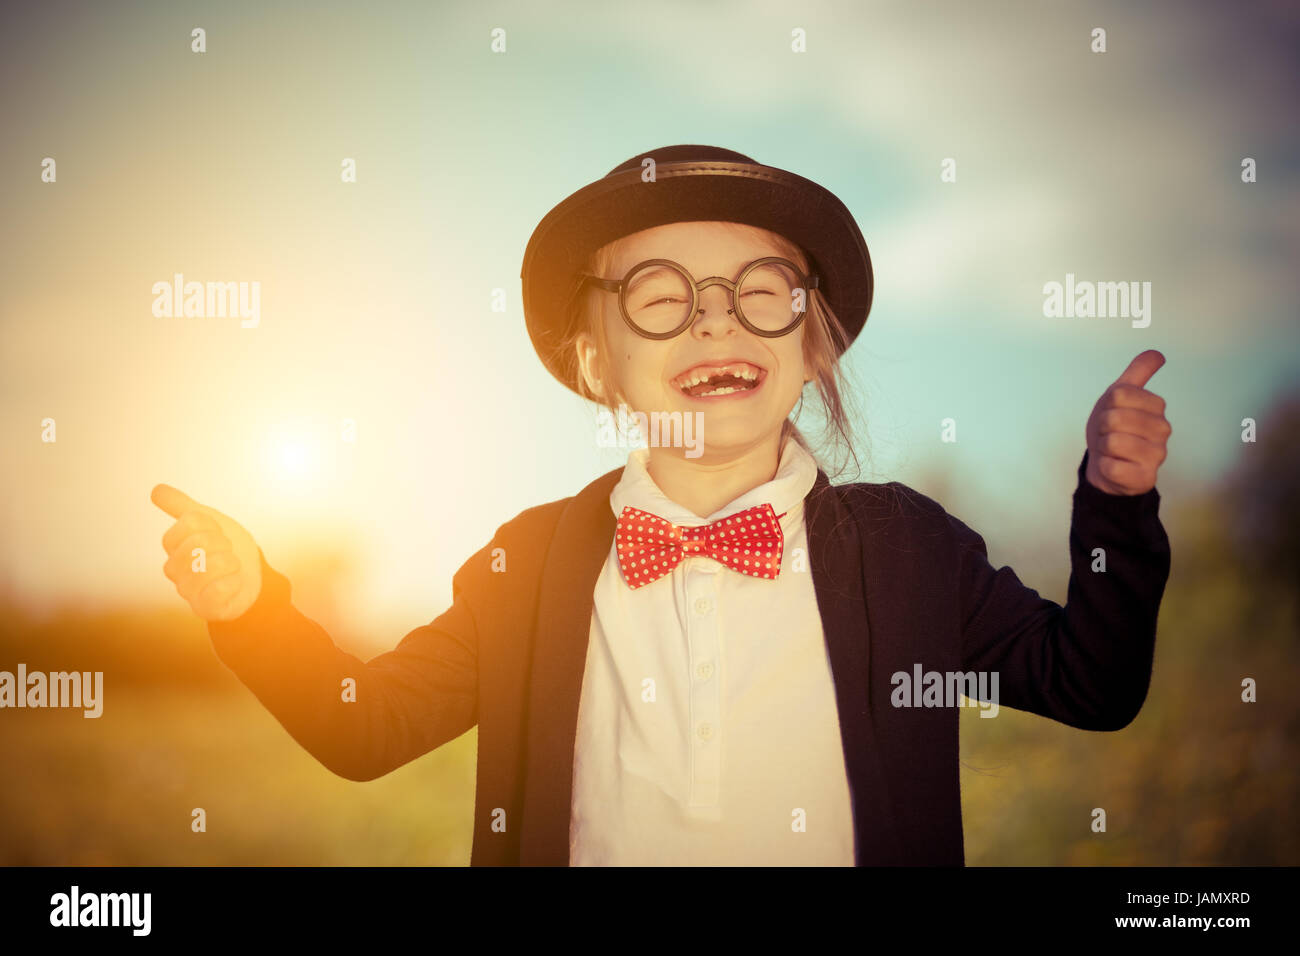 Funny little girl in bow tie and bowler hat showing thumbs up. - Stock Image